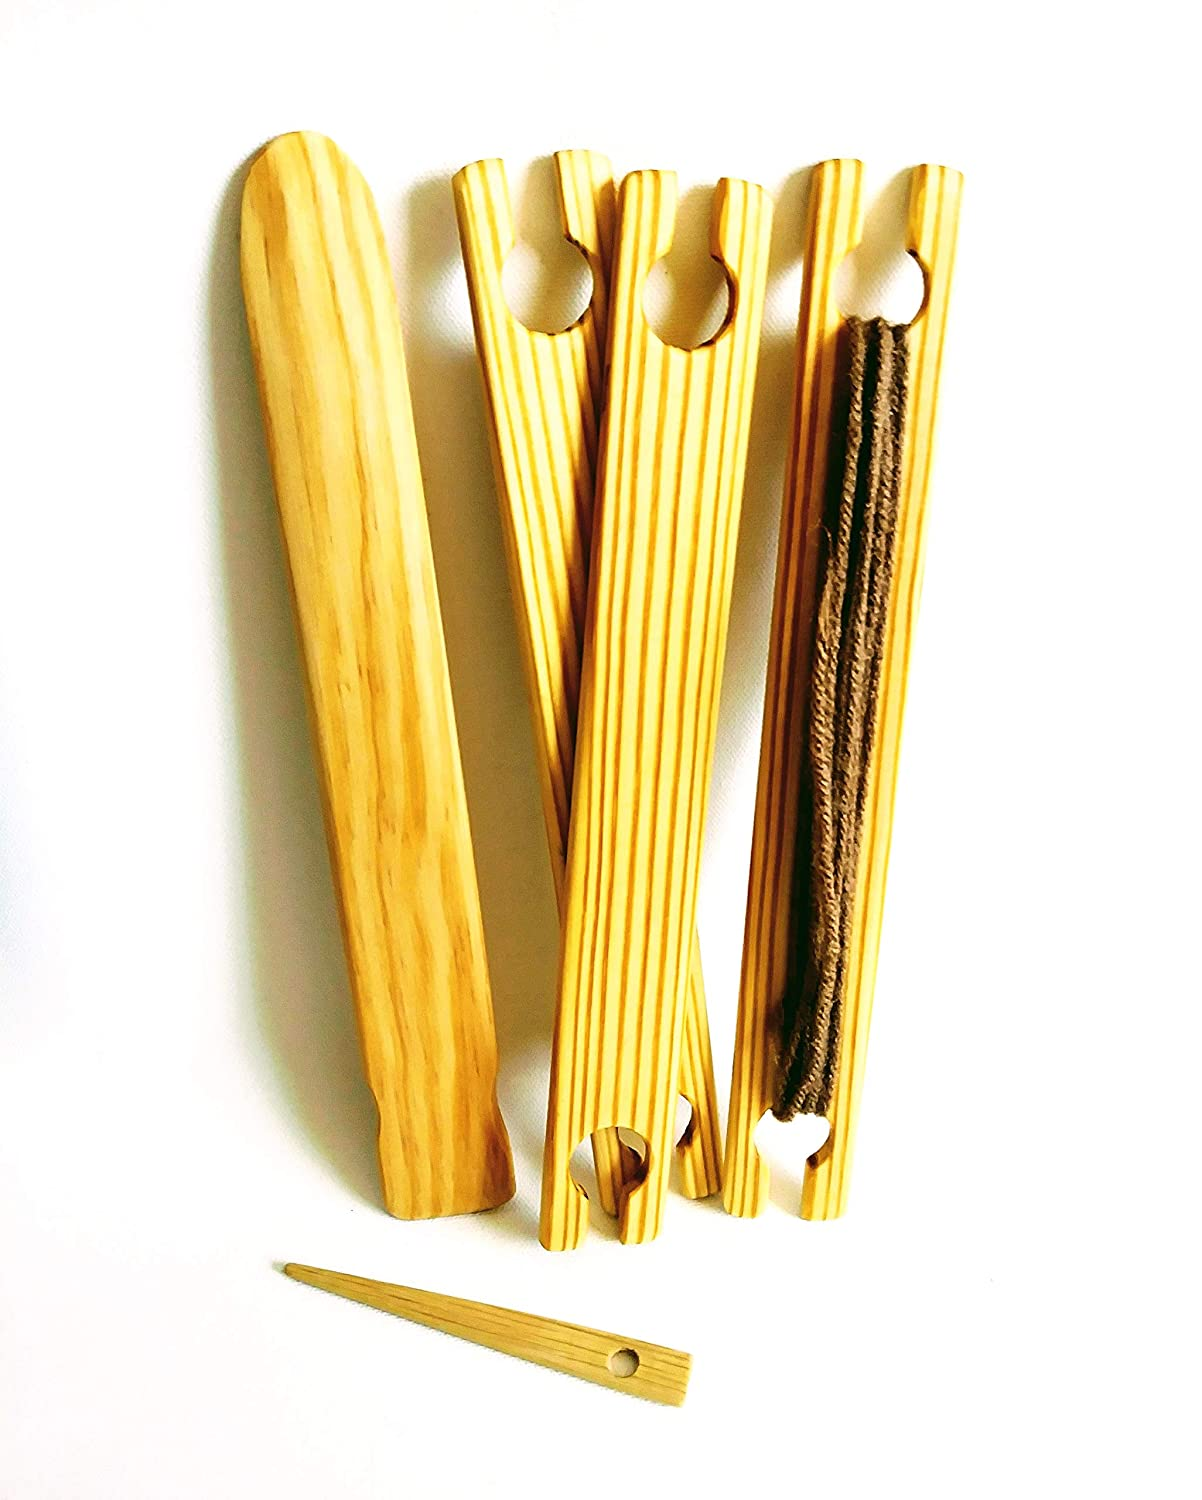 5 Piece 10 inch Weaving Shuttles, Free pick up and stick needle LoomsAndToolz CDR5PK-10